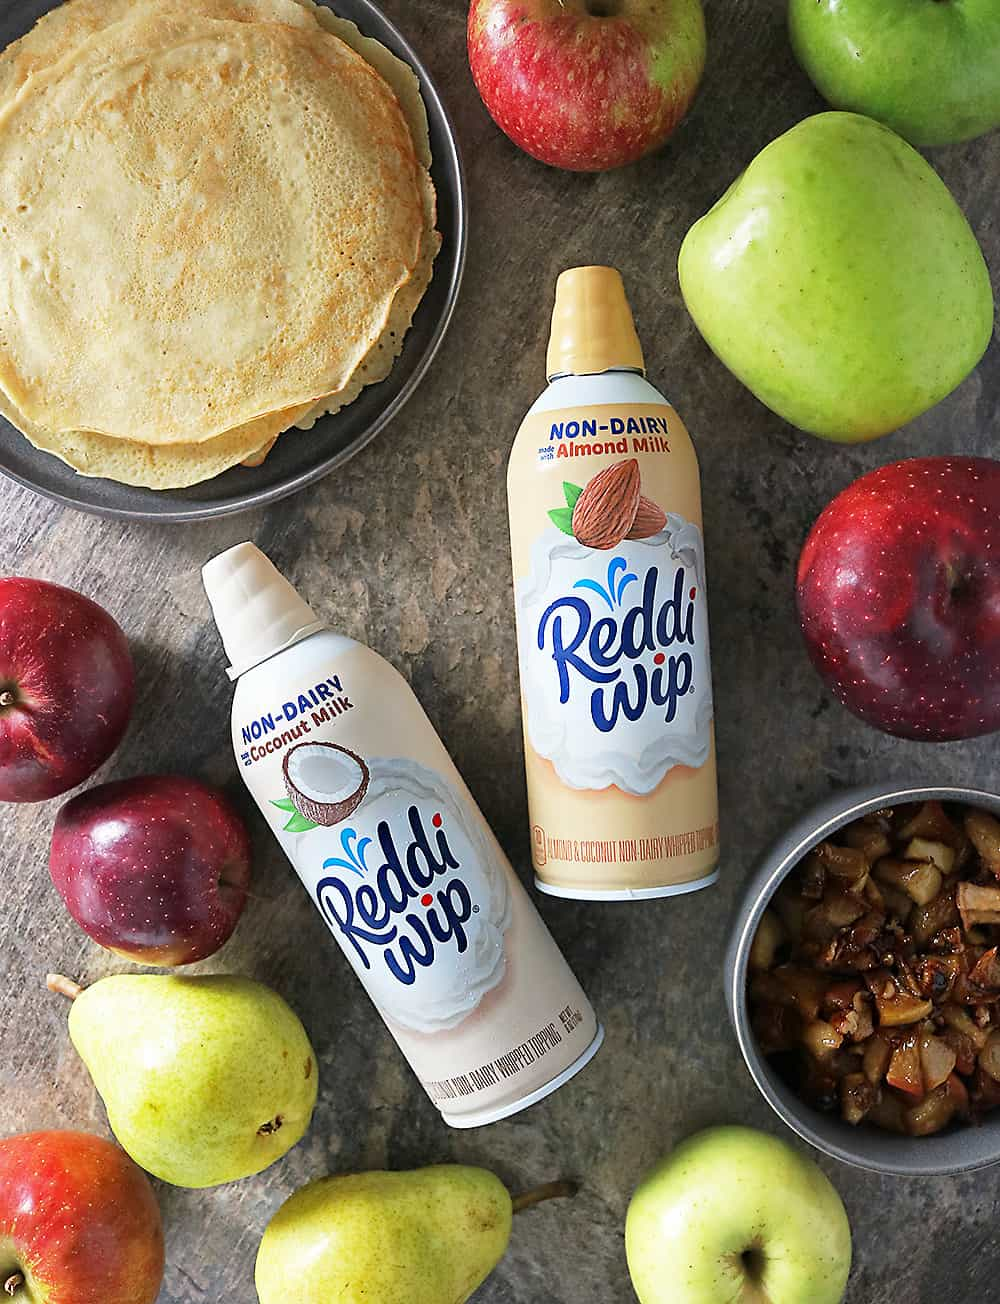 Reddi wip Non Dairy whipped topping And Crepes Photo